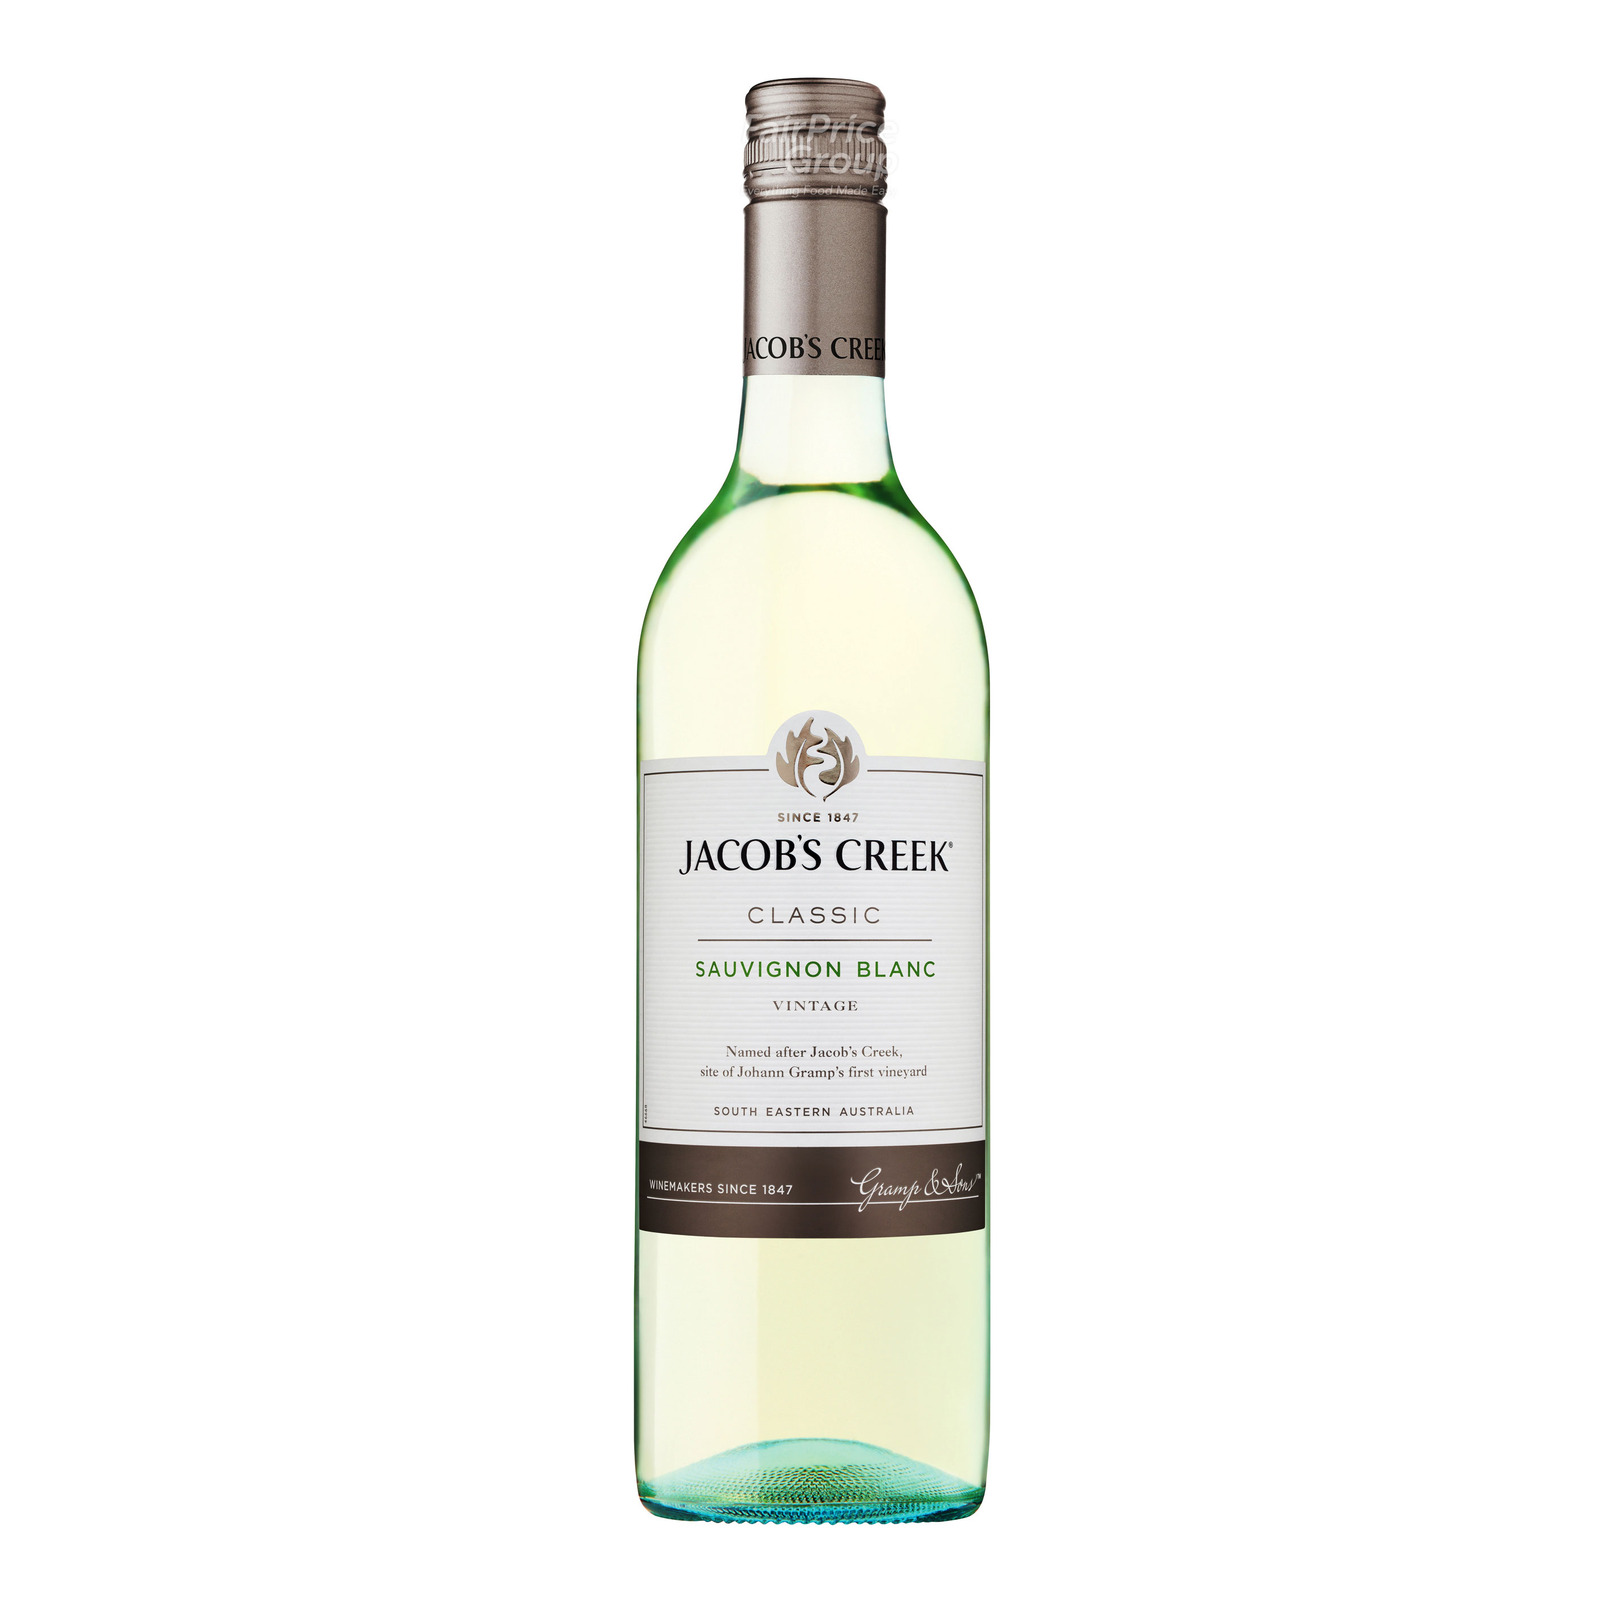 Jacob's Creek Classic White Wine - Sauvignon Blanc